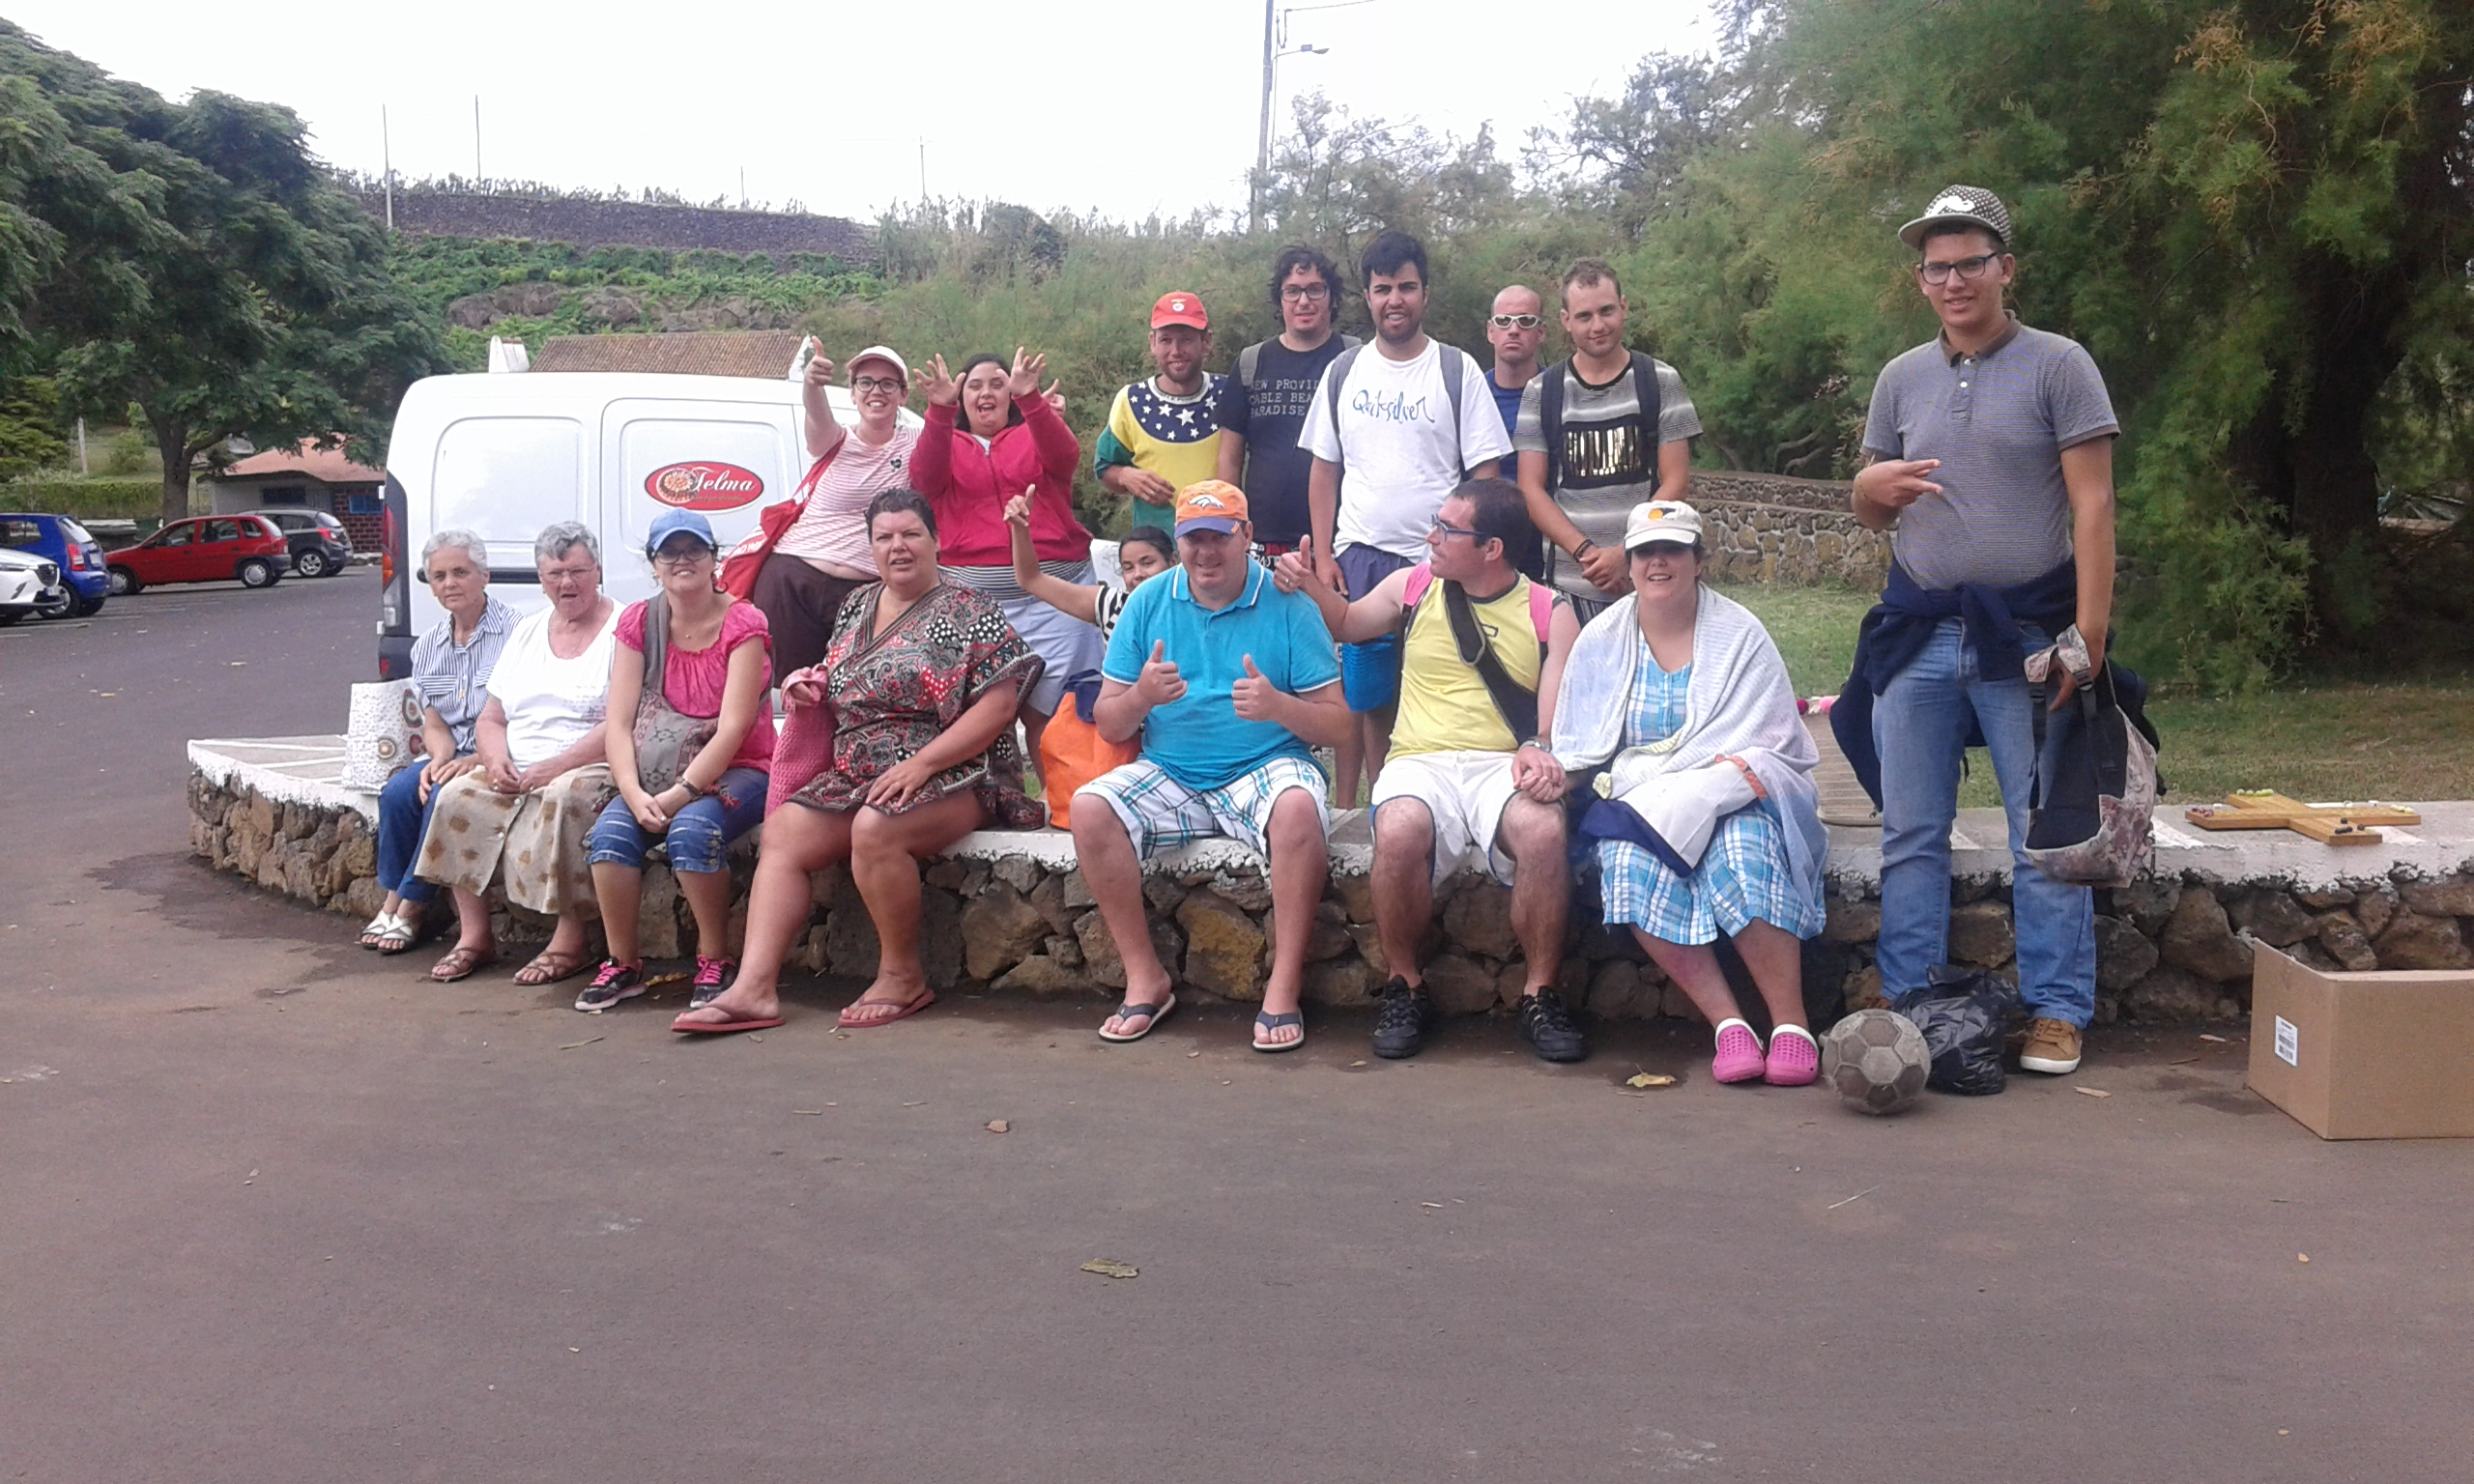 ECOS - Picnic Anual do CMA